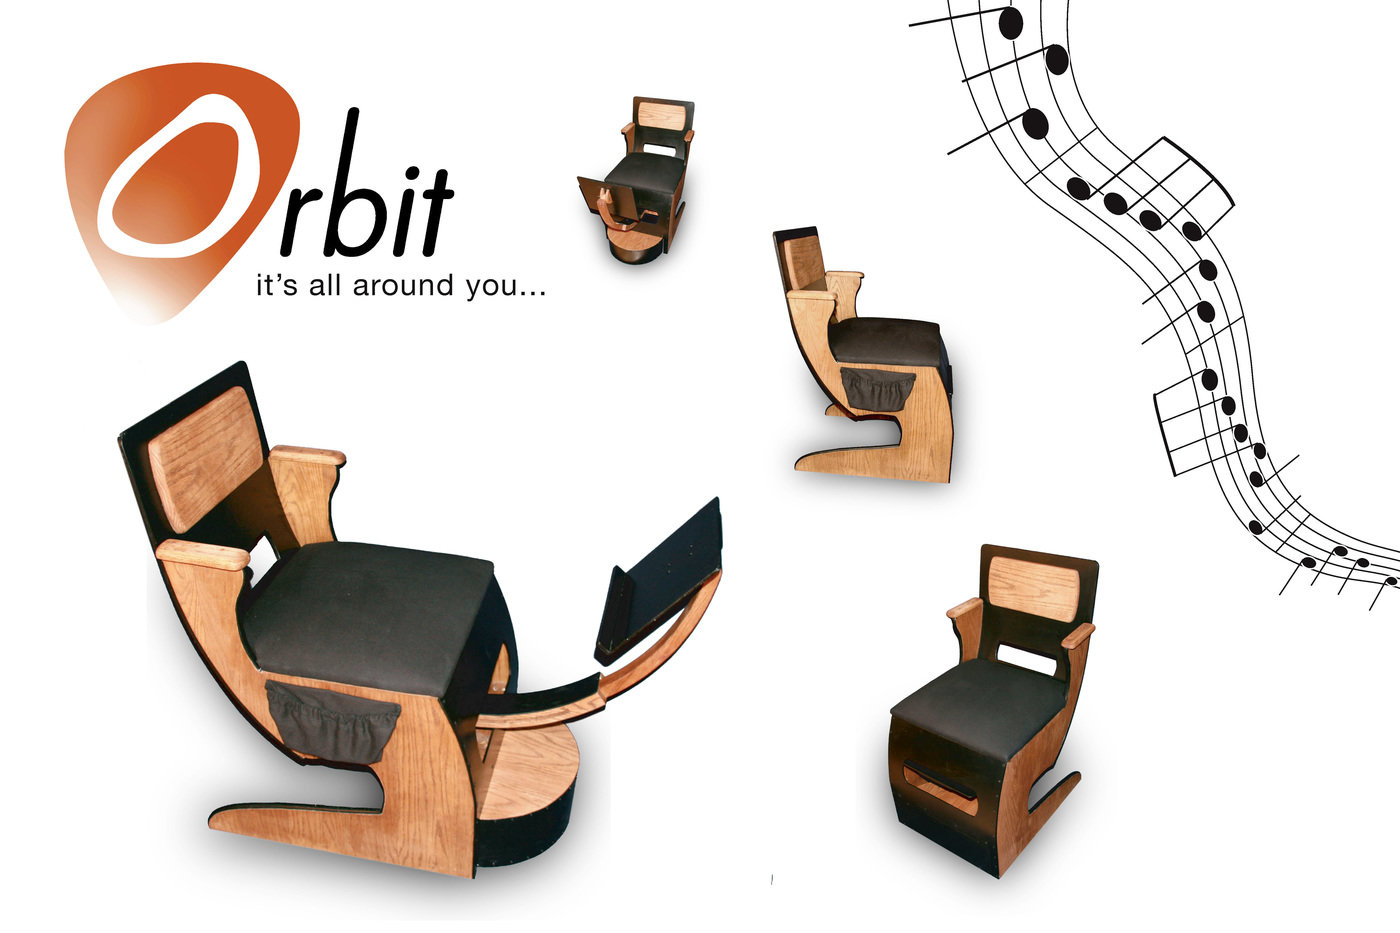 Guitar Chair by Robert Deutsch at Coroflotcom